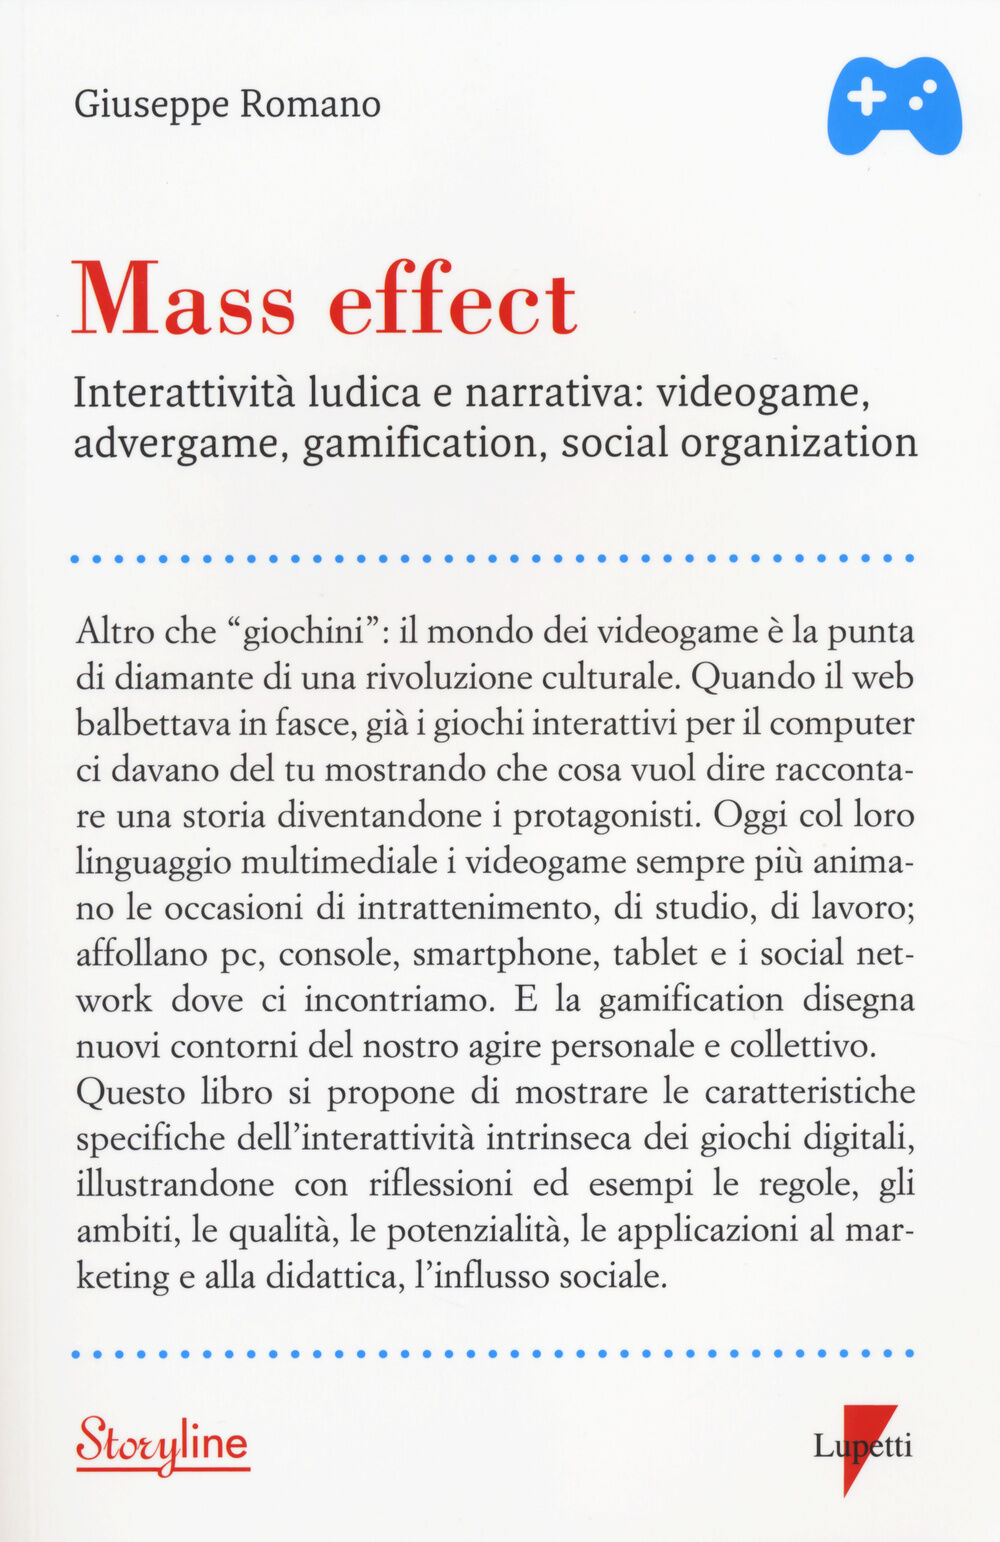 Mass effect. Interattività ludica e narrativa: videogame, advergame, gamification, social organization